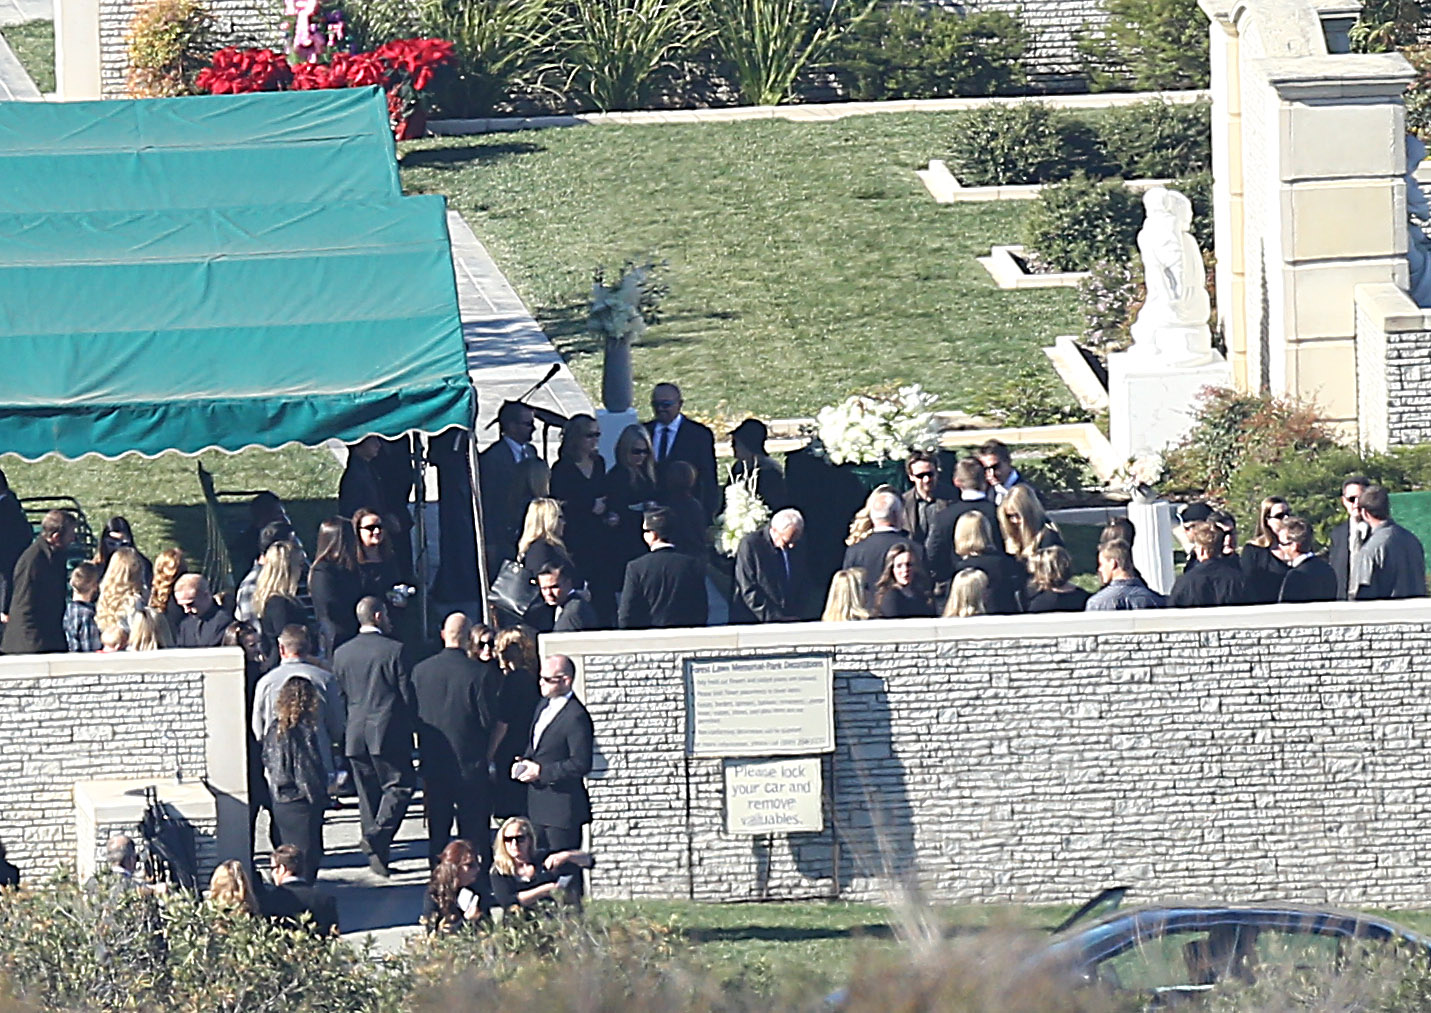 Paul Walker's funeral at Forest Lawn cemetery. (Hayk / Splash News)